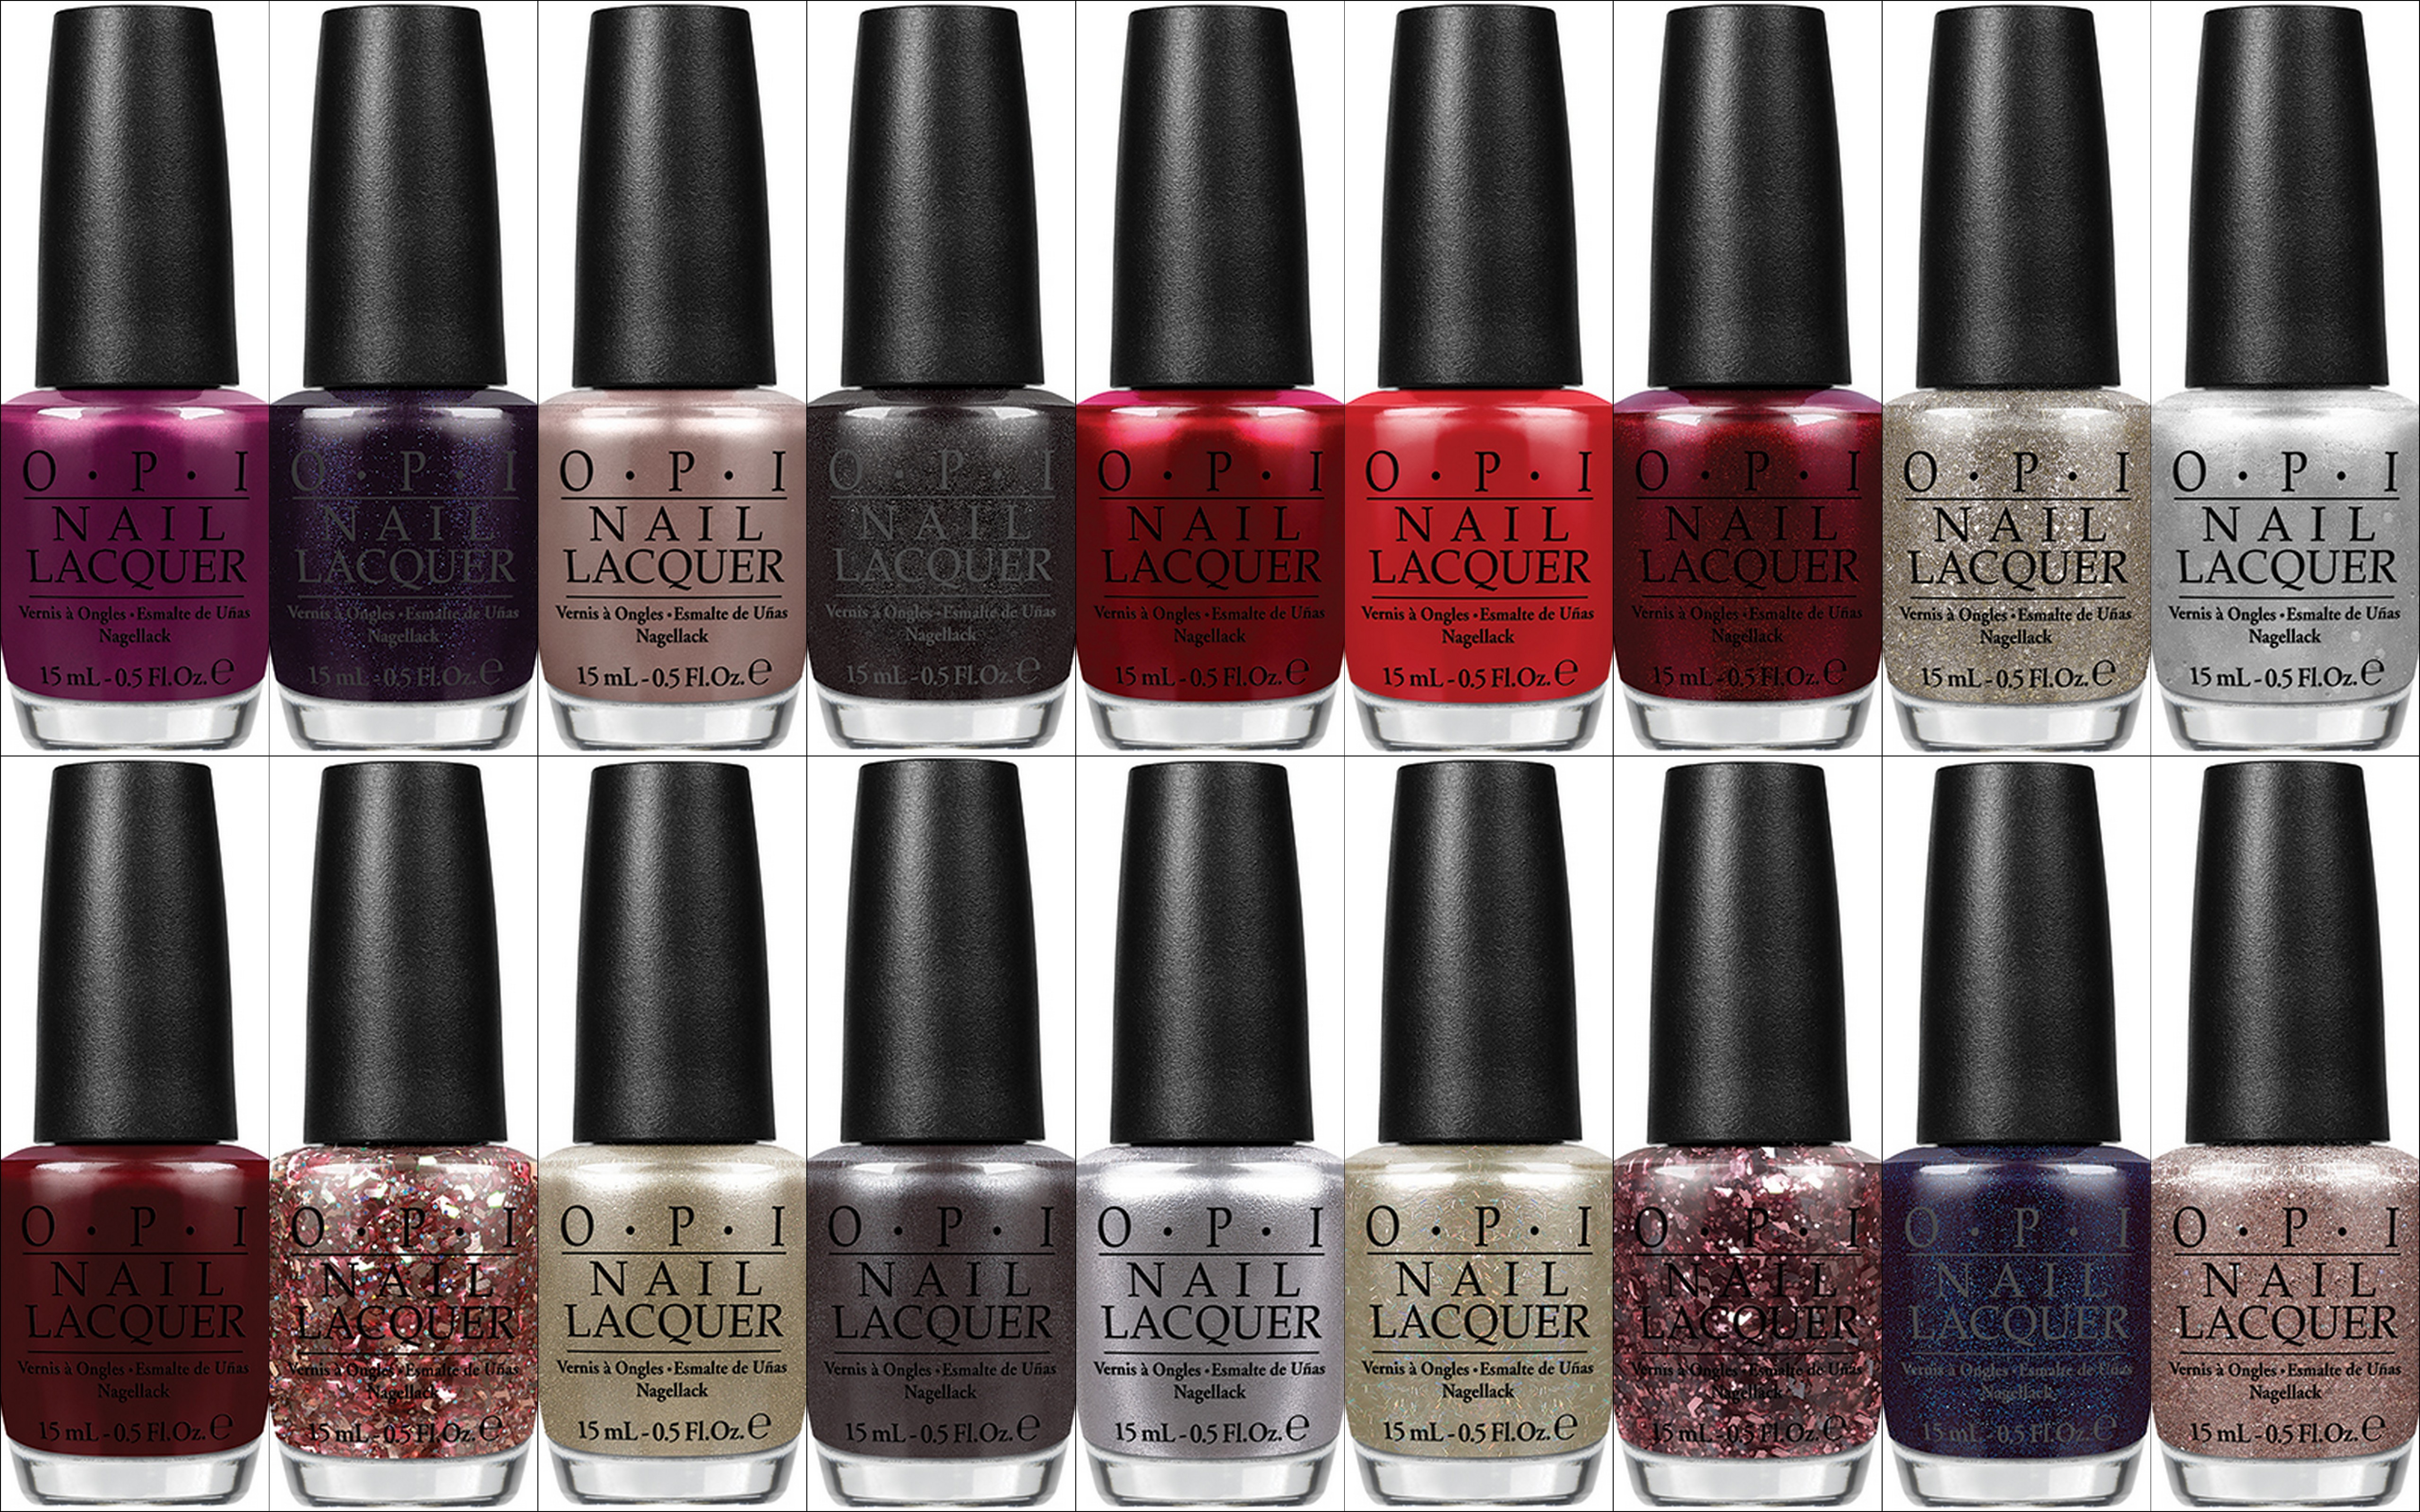 Press Release: OPI Starlight Collection - Adventures In Acetone